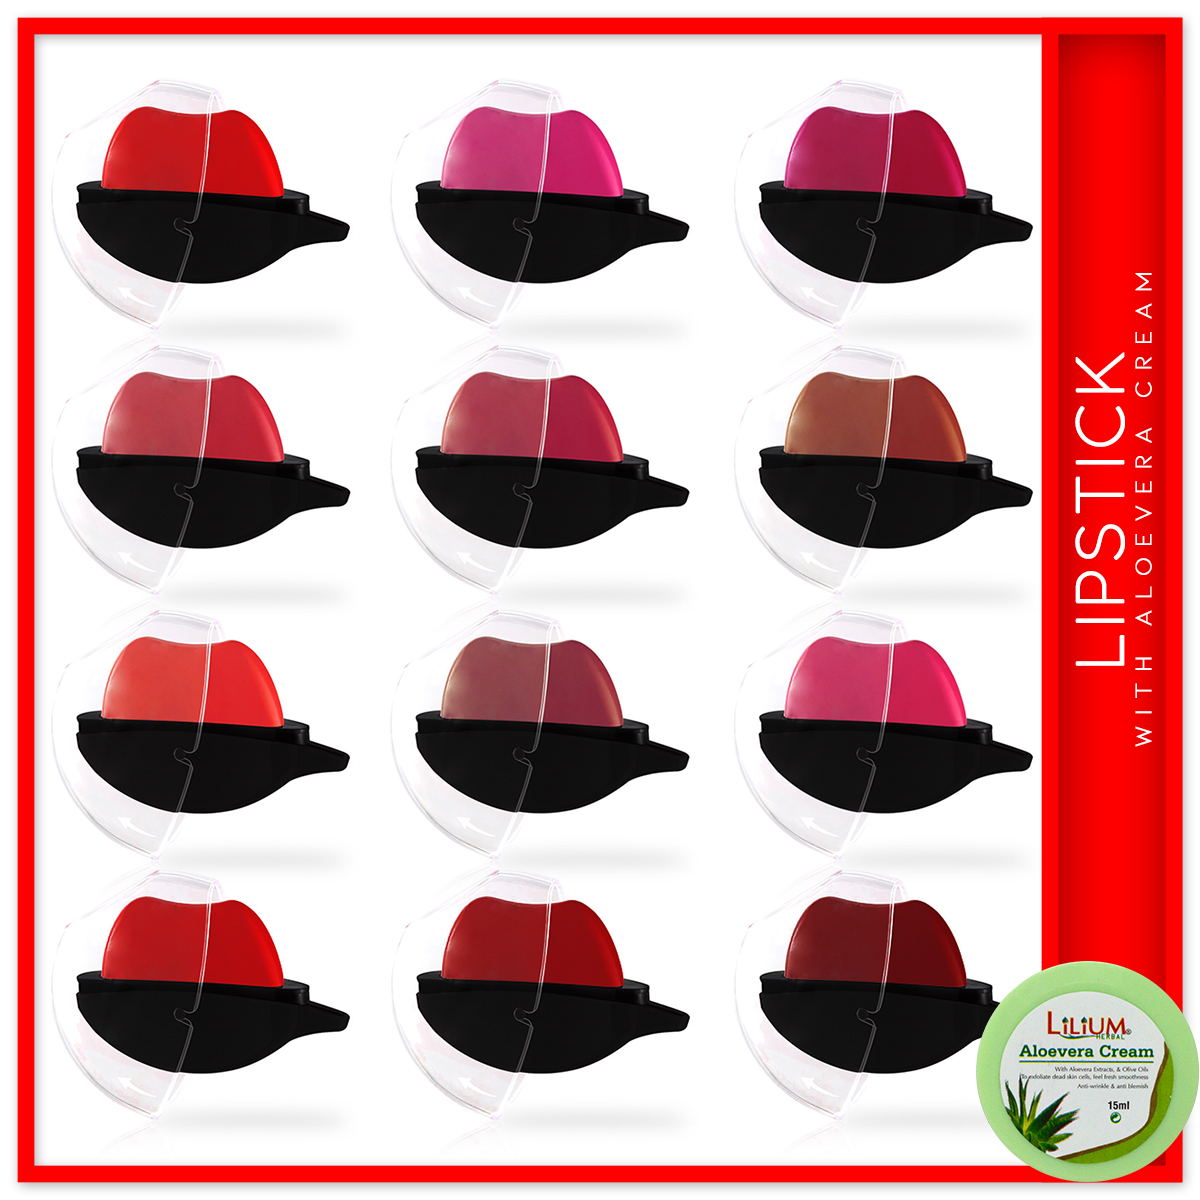 ADS Apple Design Moisturizing Lipstick A01727 Pack of 12 with Lilium Aloevera Cream